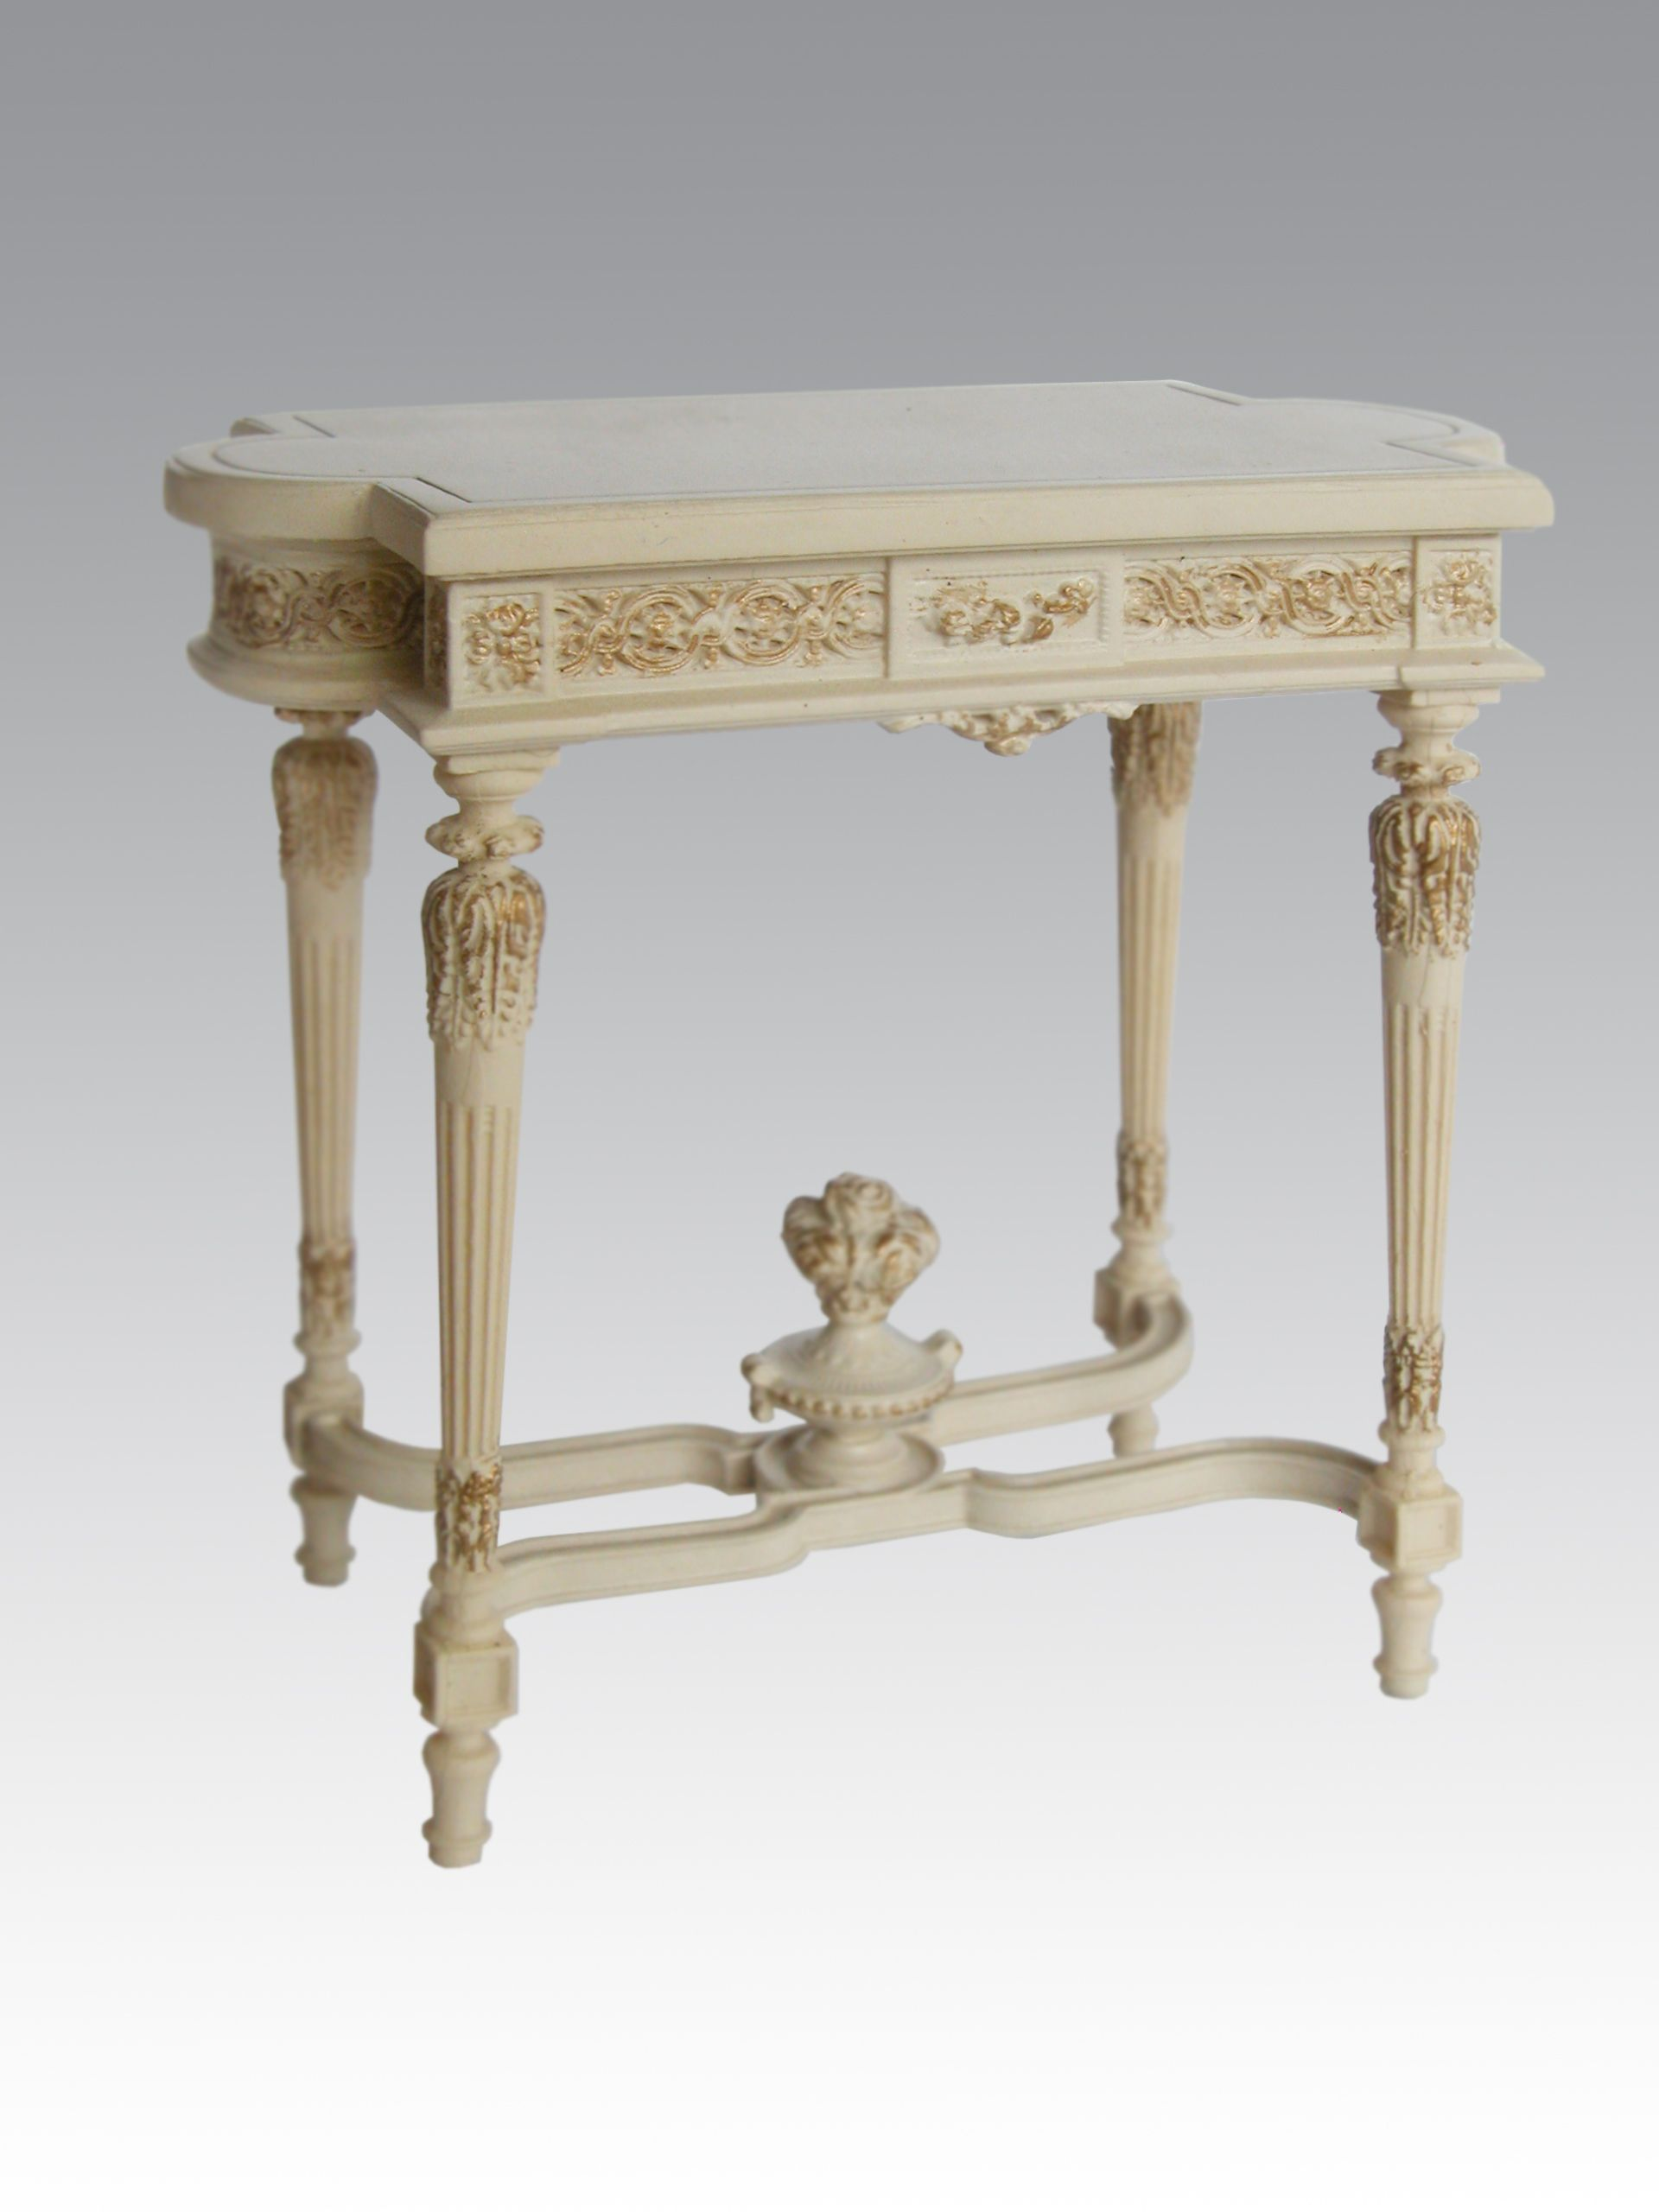 18th Century French Console Table By Alison Davies Www Alisondaviesminiatures Co Uk